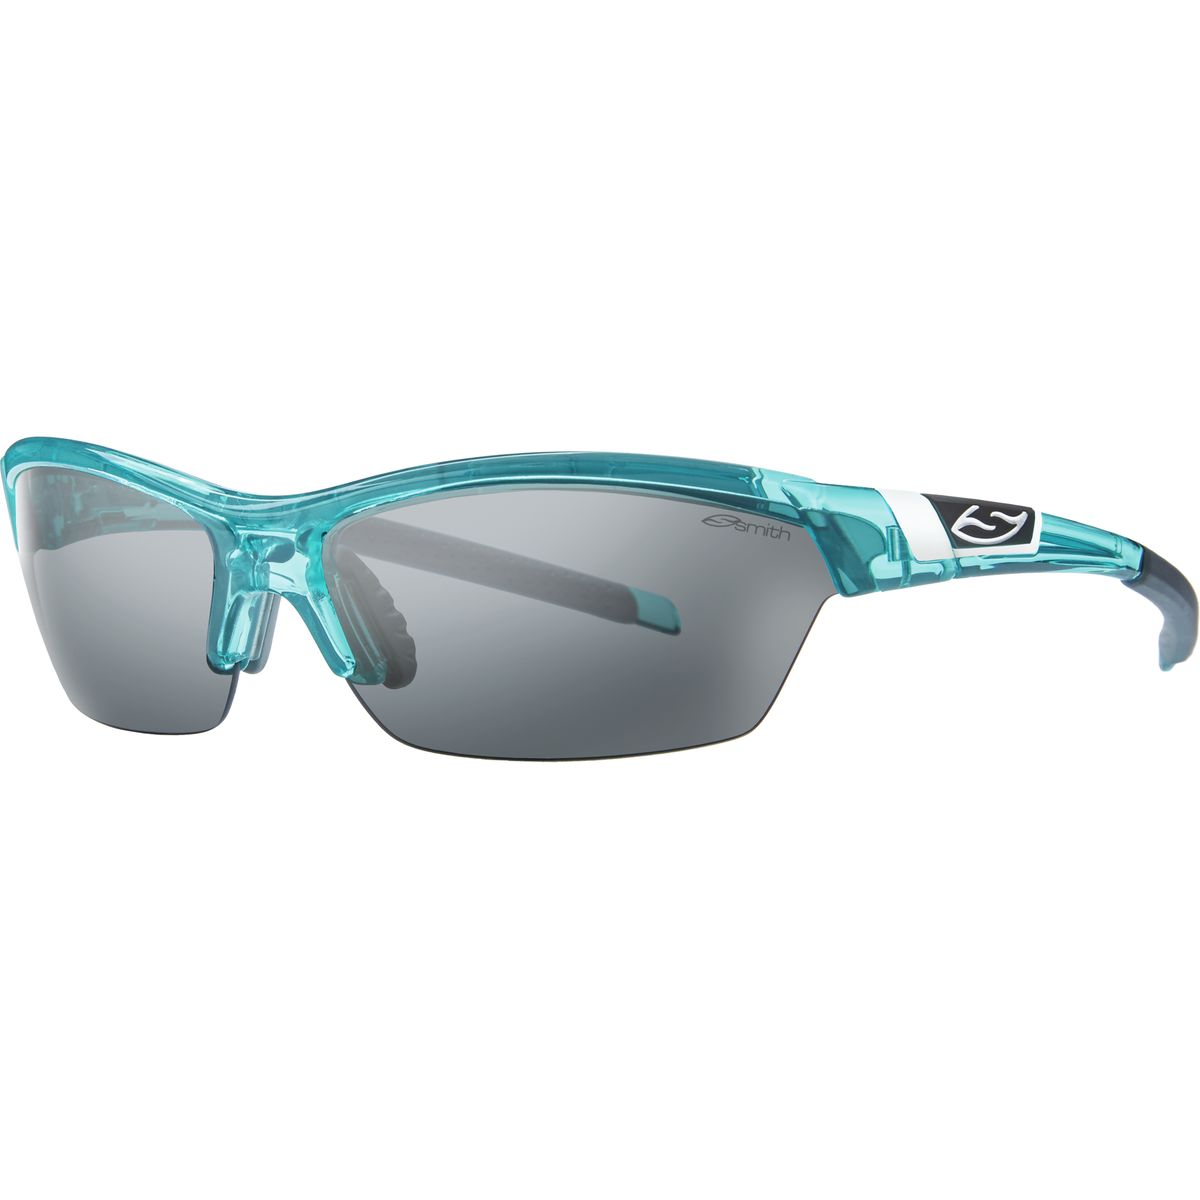 Smith Approach Sunglasses Men's